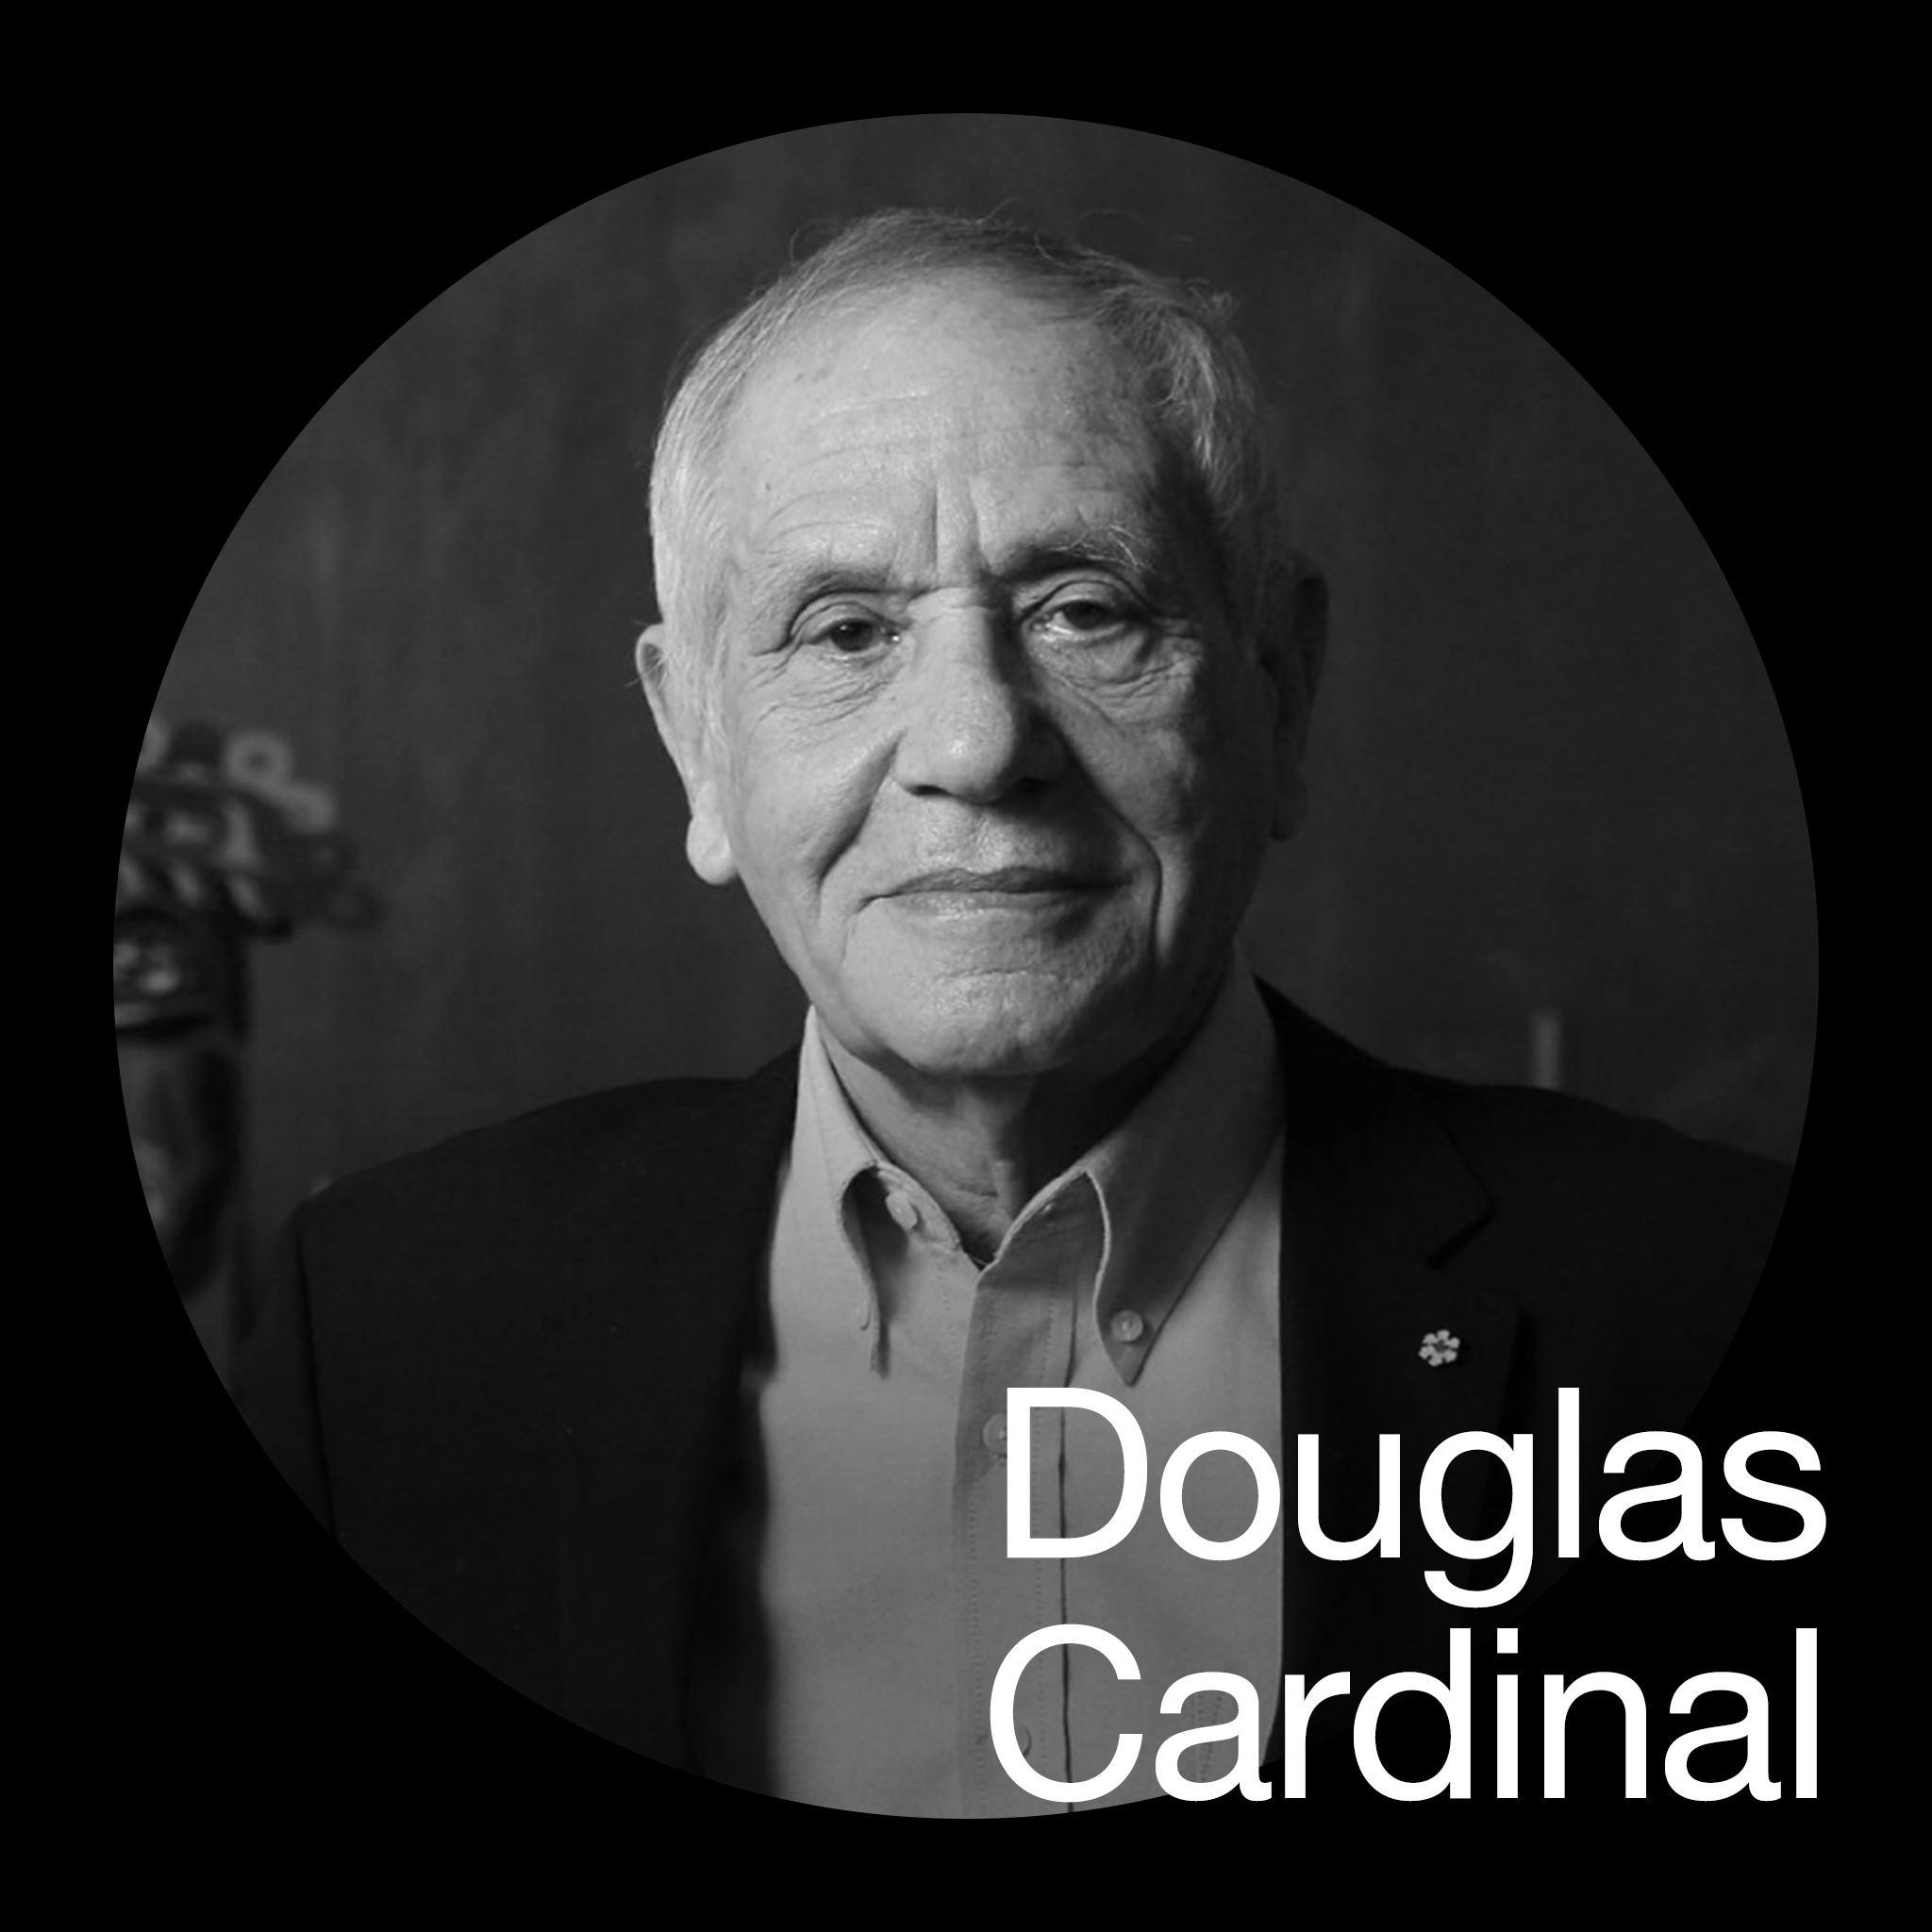 Douglas Cardinal | Architectural Principles from an Indigenous Perspective